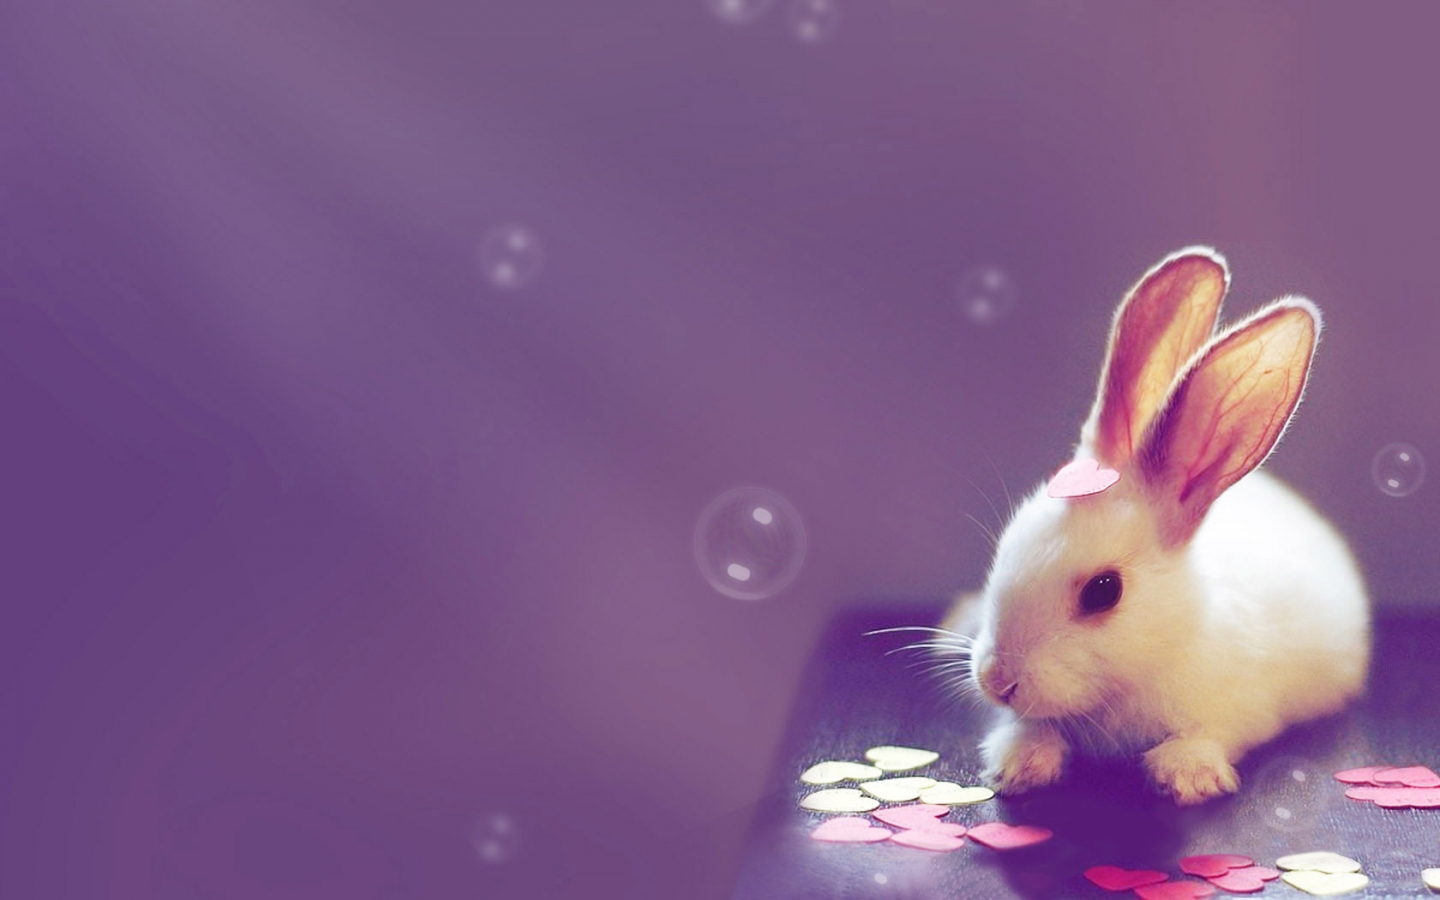 cute bunny rabbit wallpaper hd desktop wallpapers 4k hd